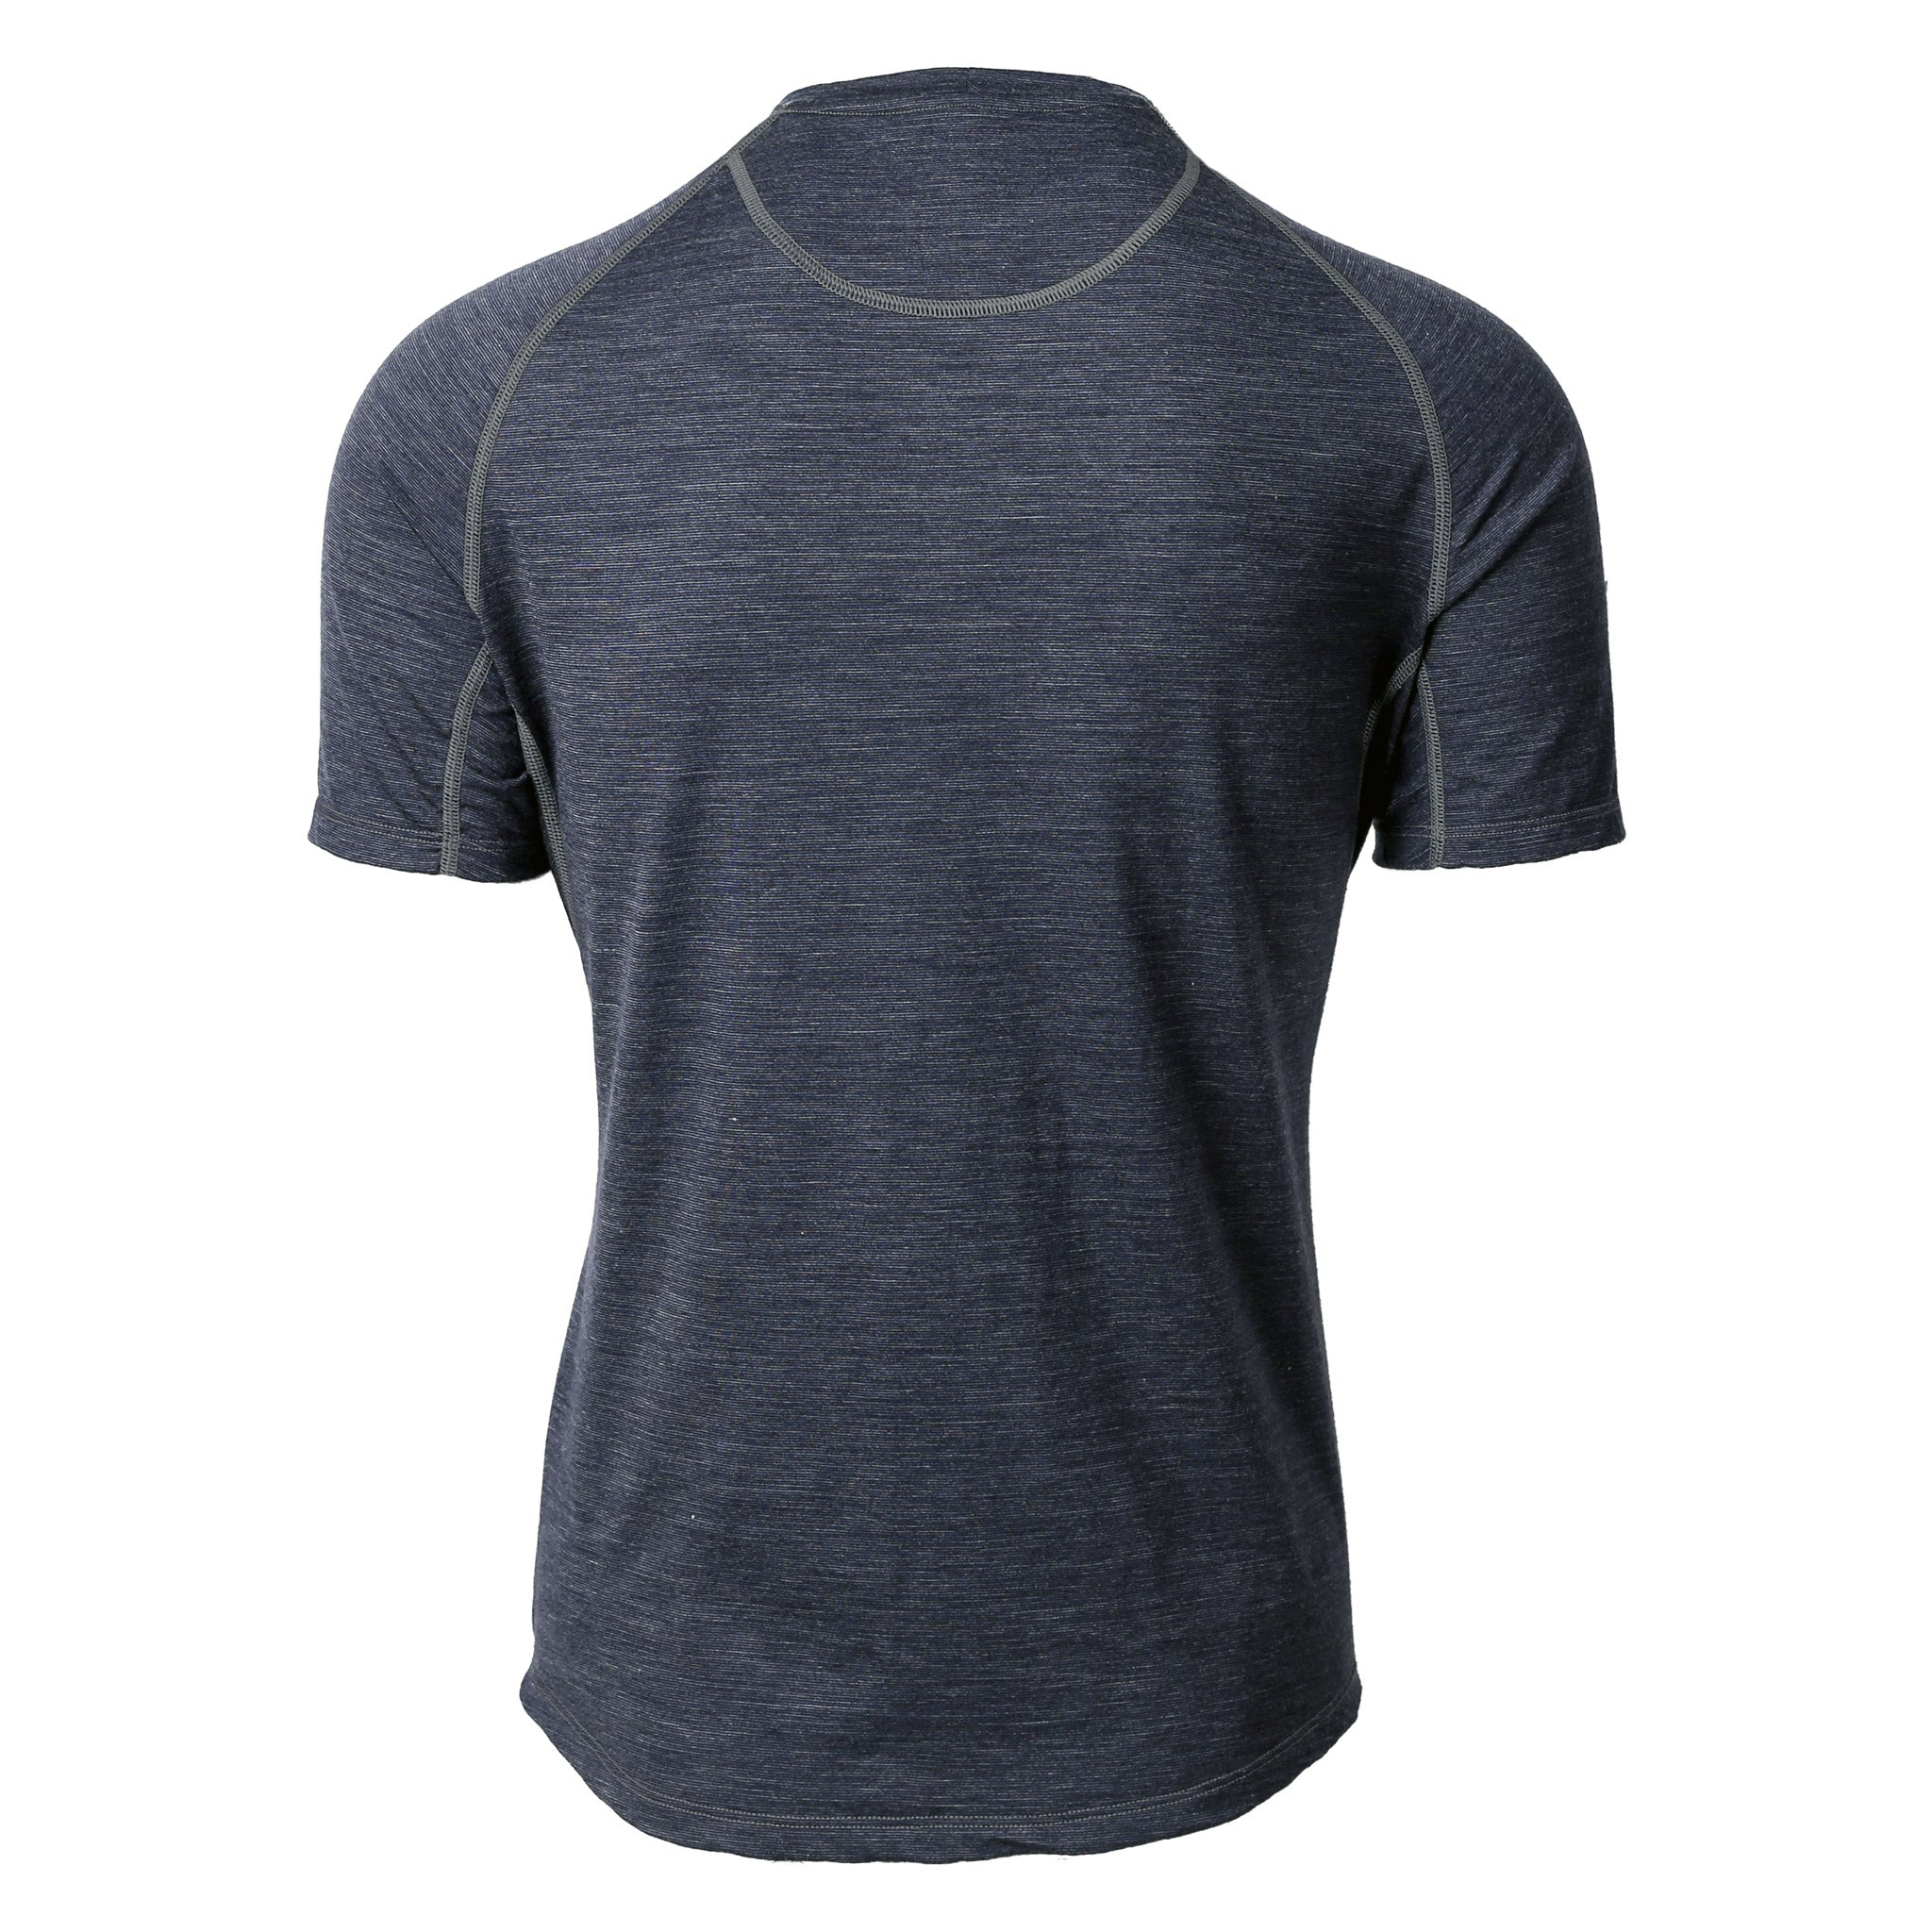 Mullinax Merino Tee Ultra Navy Heather